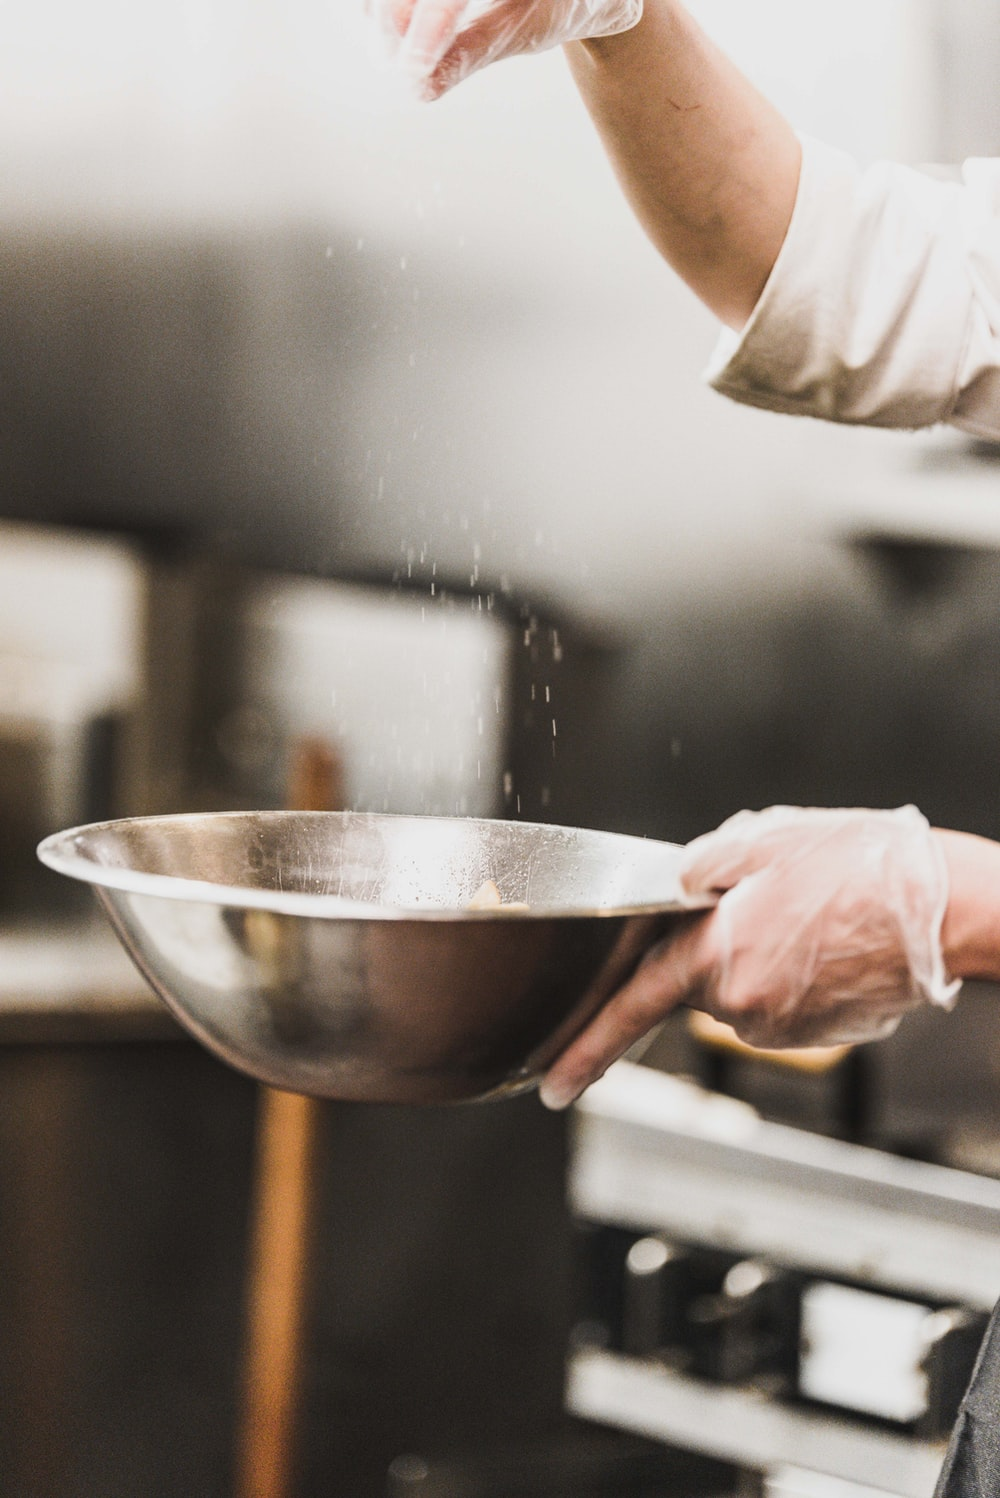 person garnishing on gray stainless steel bowl